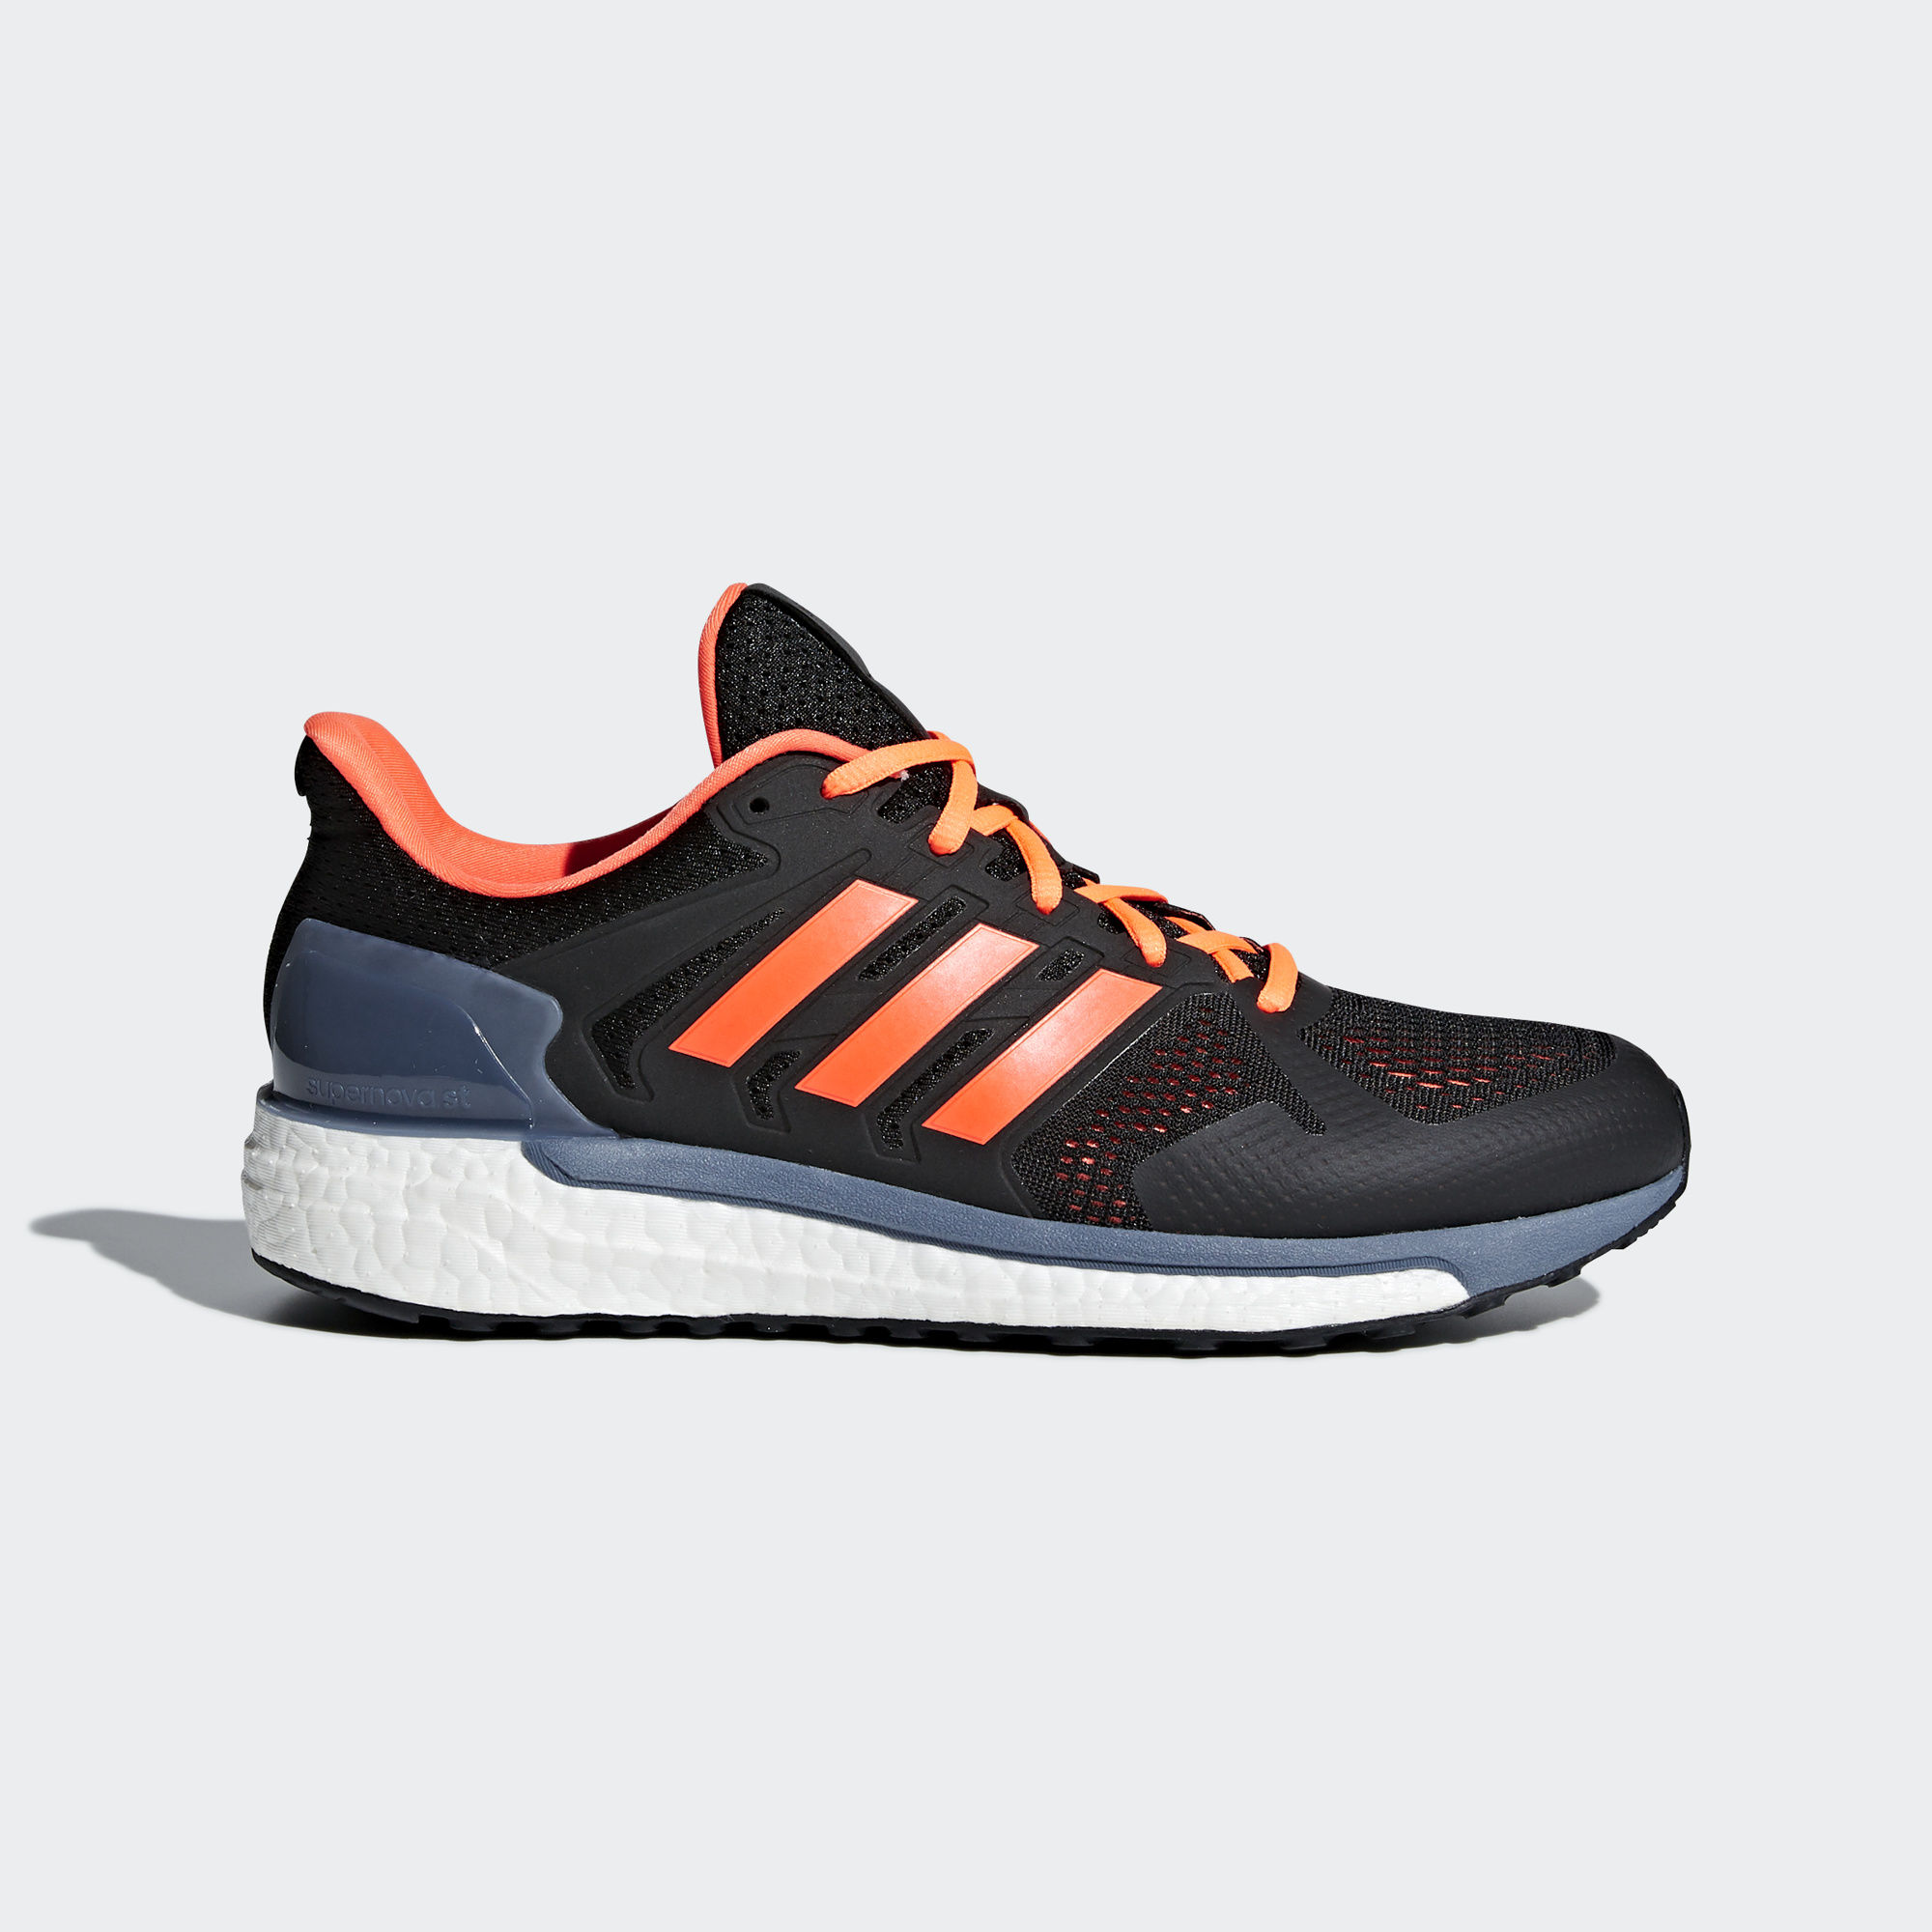 low priced 71790 fa109 ADIDAS SUPERNOVA ST MENS